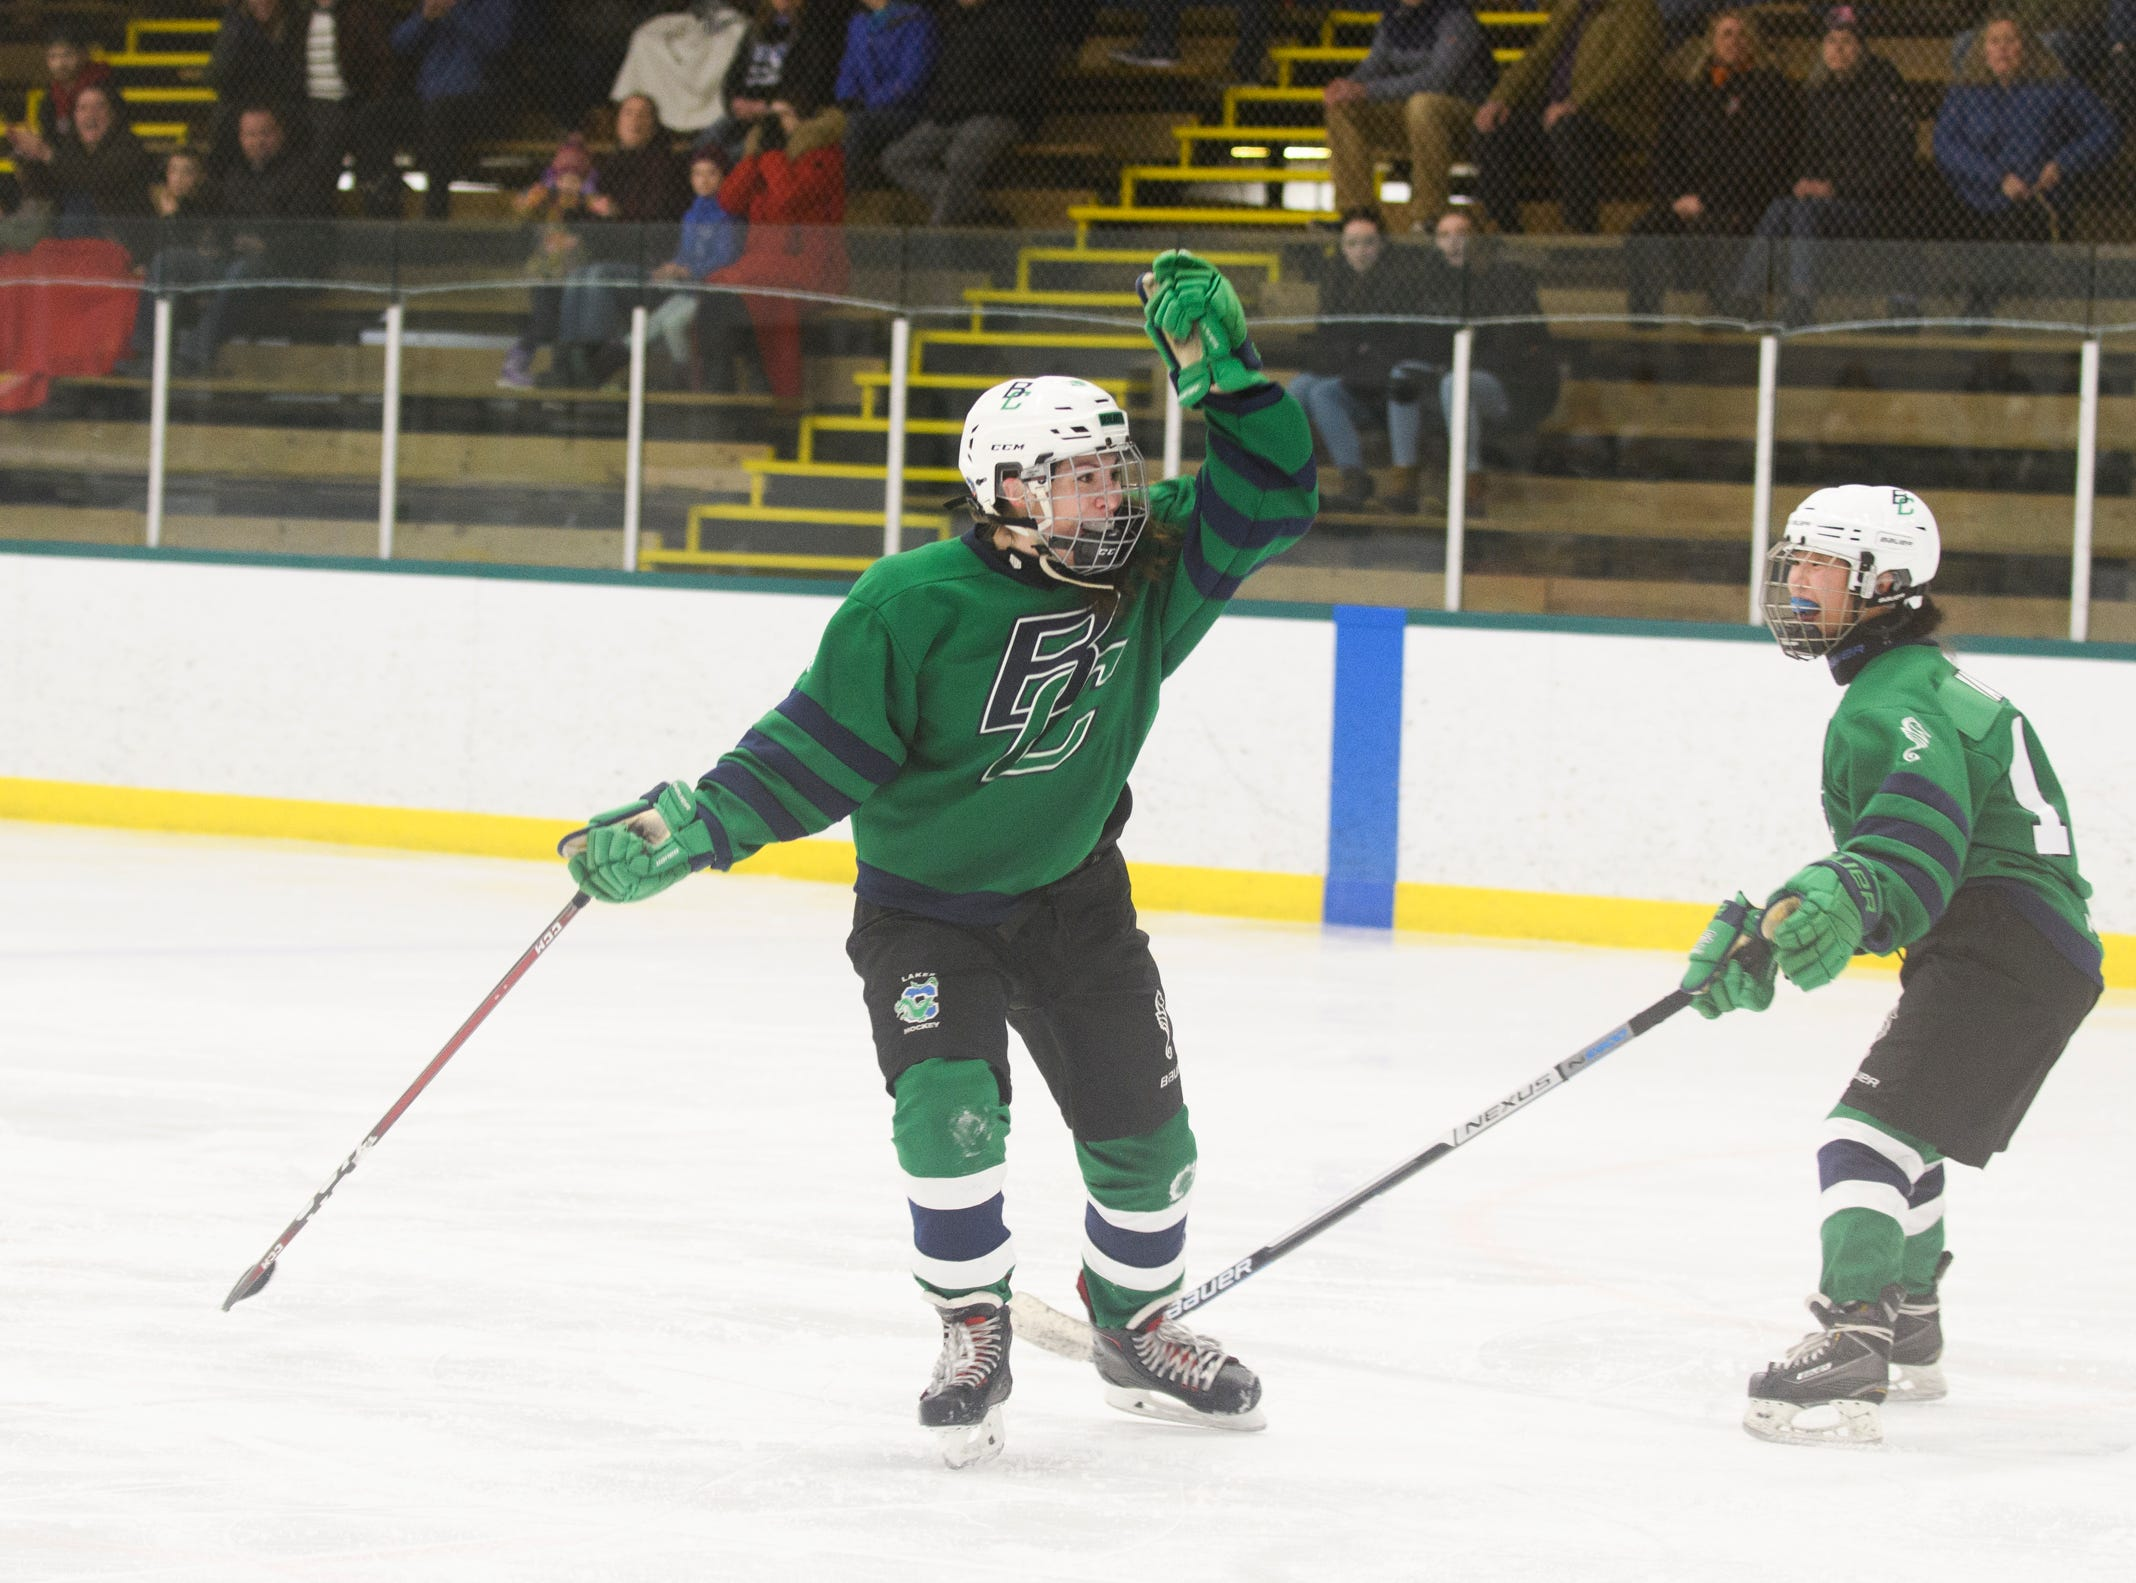 Burlington/Colchester celebrates a goal during the girls hockey game between the Rutland Raiders and the Burlington/Colchester Sea Lakers at the Gordon Paquette Arena at Leddy Park on Tuesday afternoon March 5, 2019 in Burlington, Vermont.